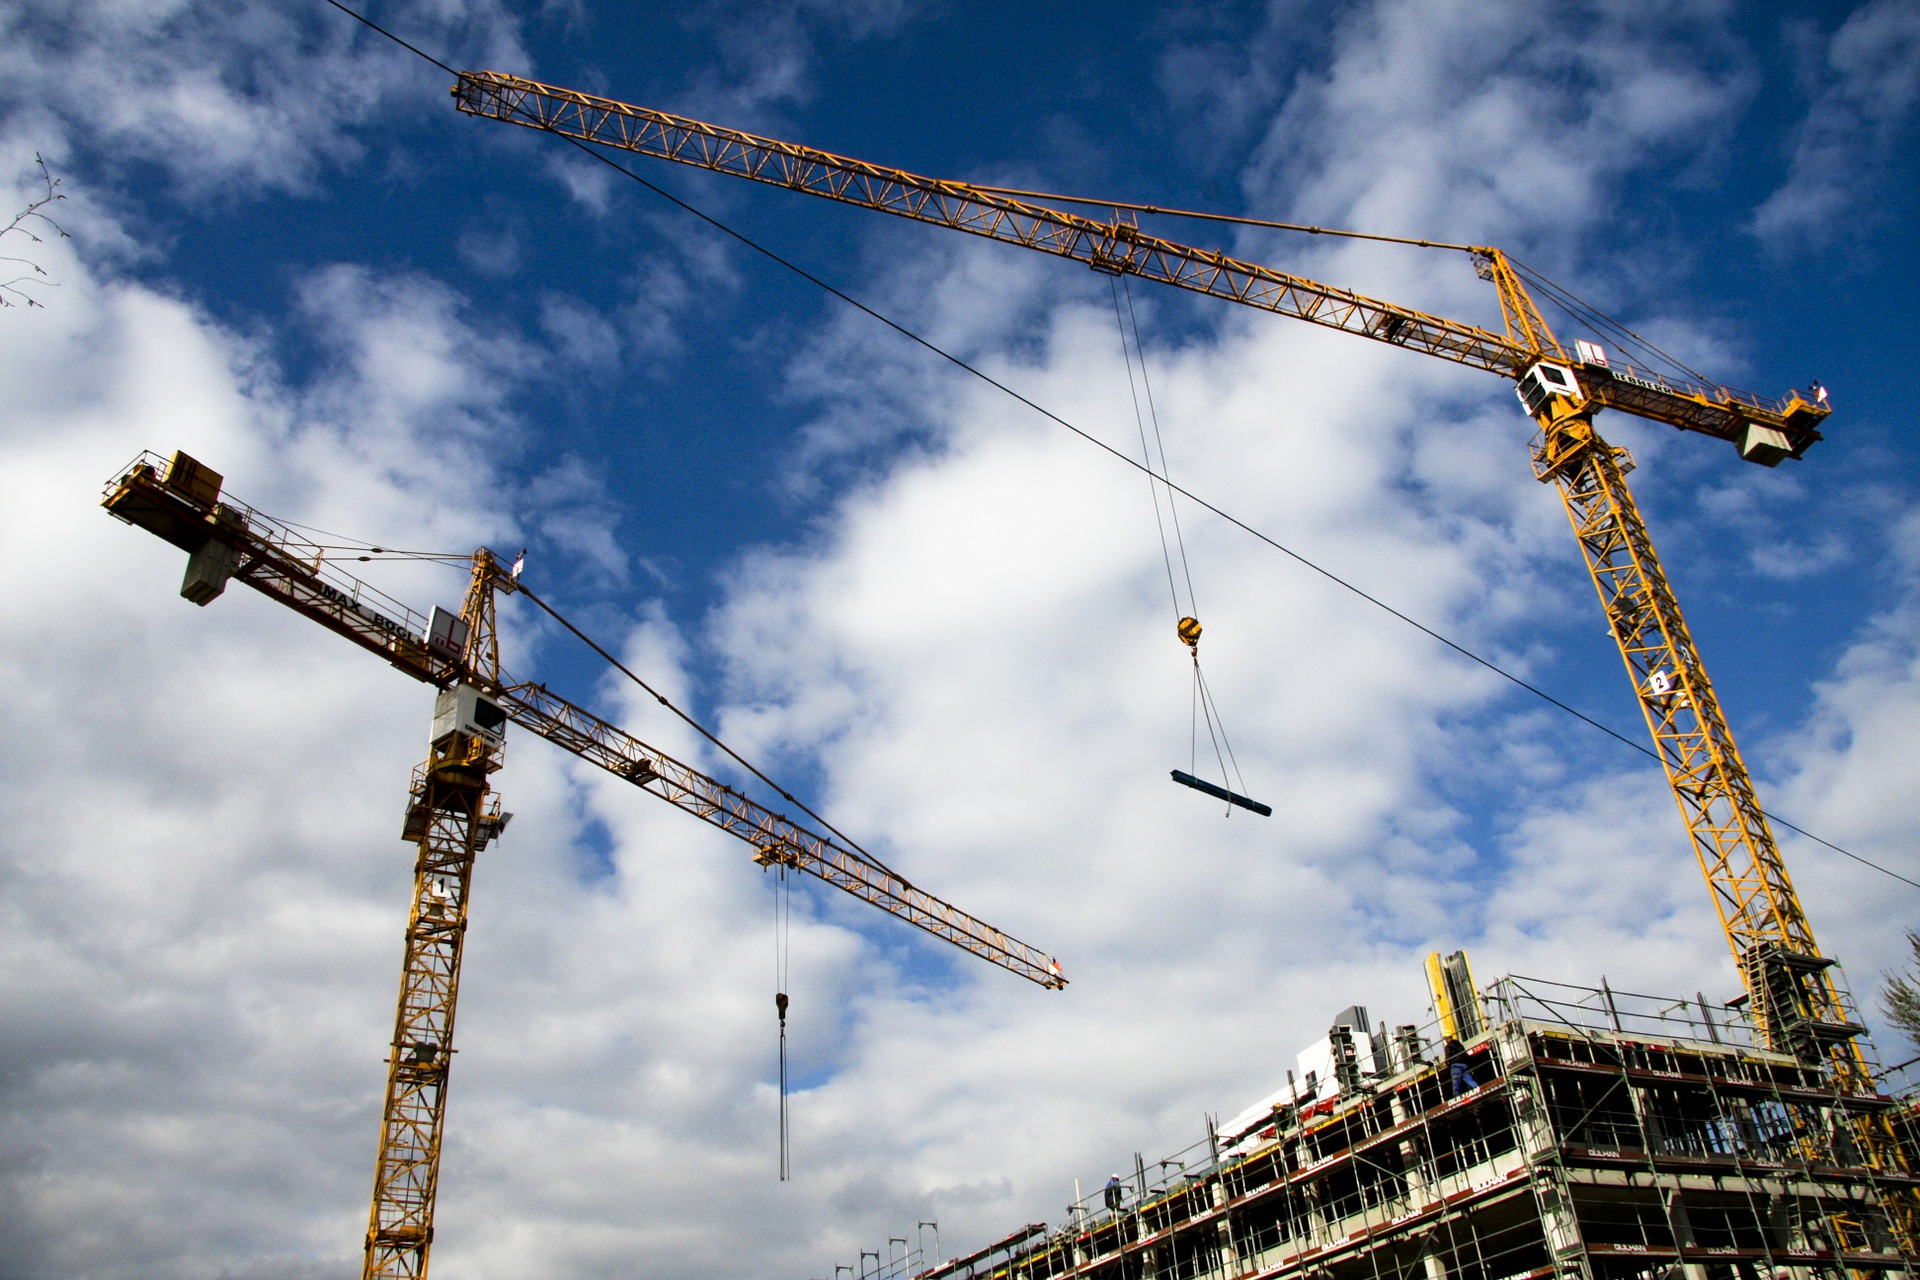 Electromagnets are the Driving Force Behind Cranes